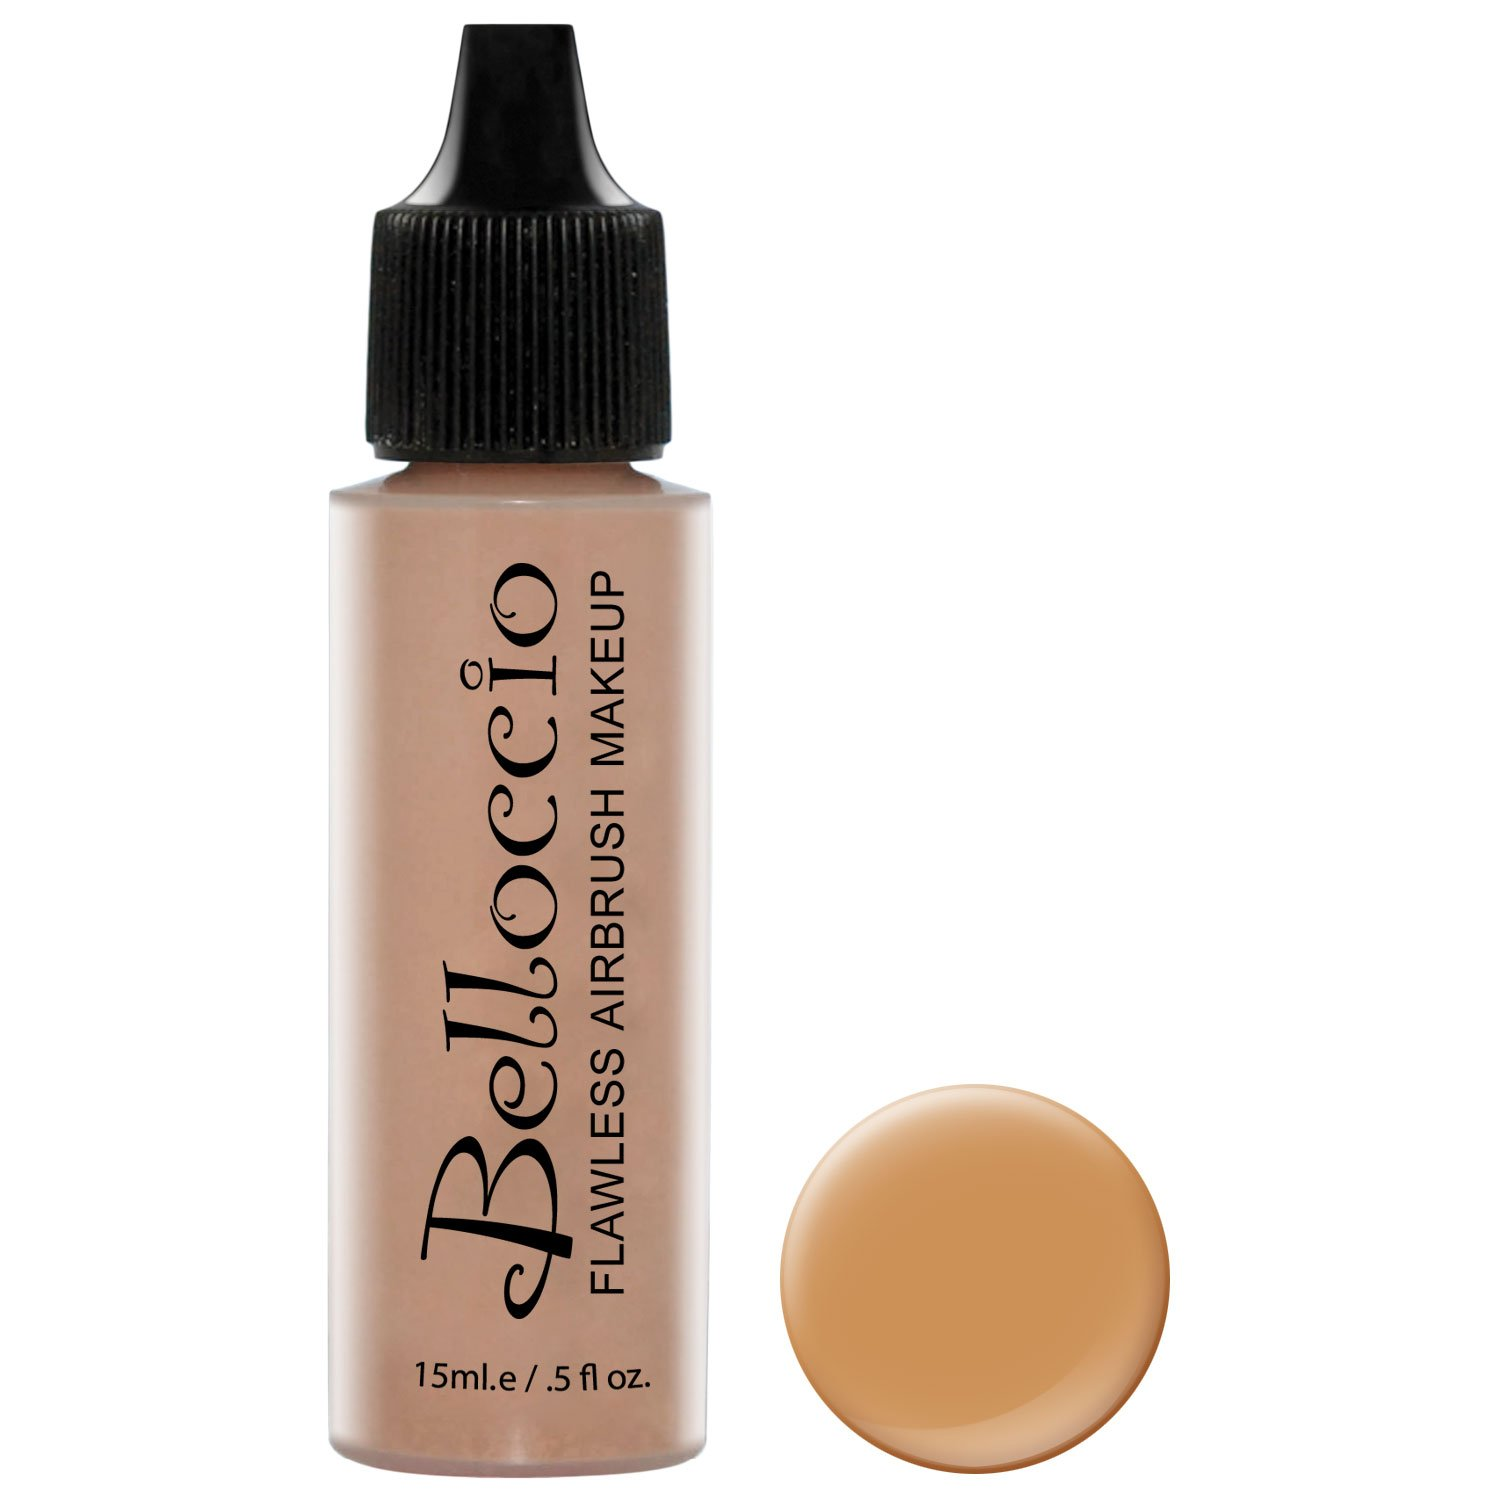 Belloccio's Professional Cosmetic Airbrush Makeup Foundation 1/2oz Bottle: Cappuccino- Medium with Olive Undertones